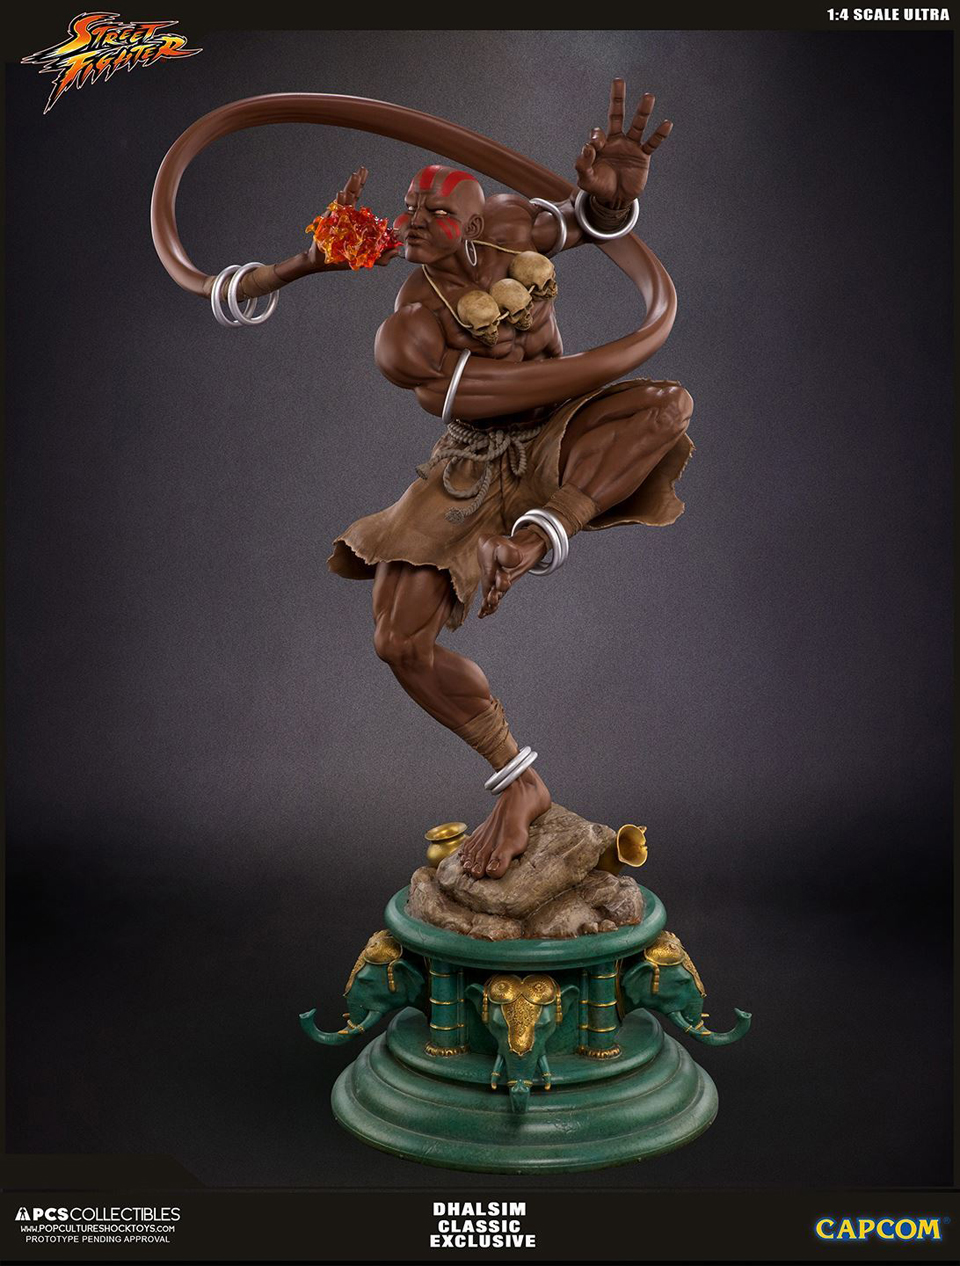 Street Fighter Dhalsim 1:4 Ultra Statue